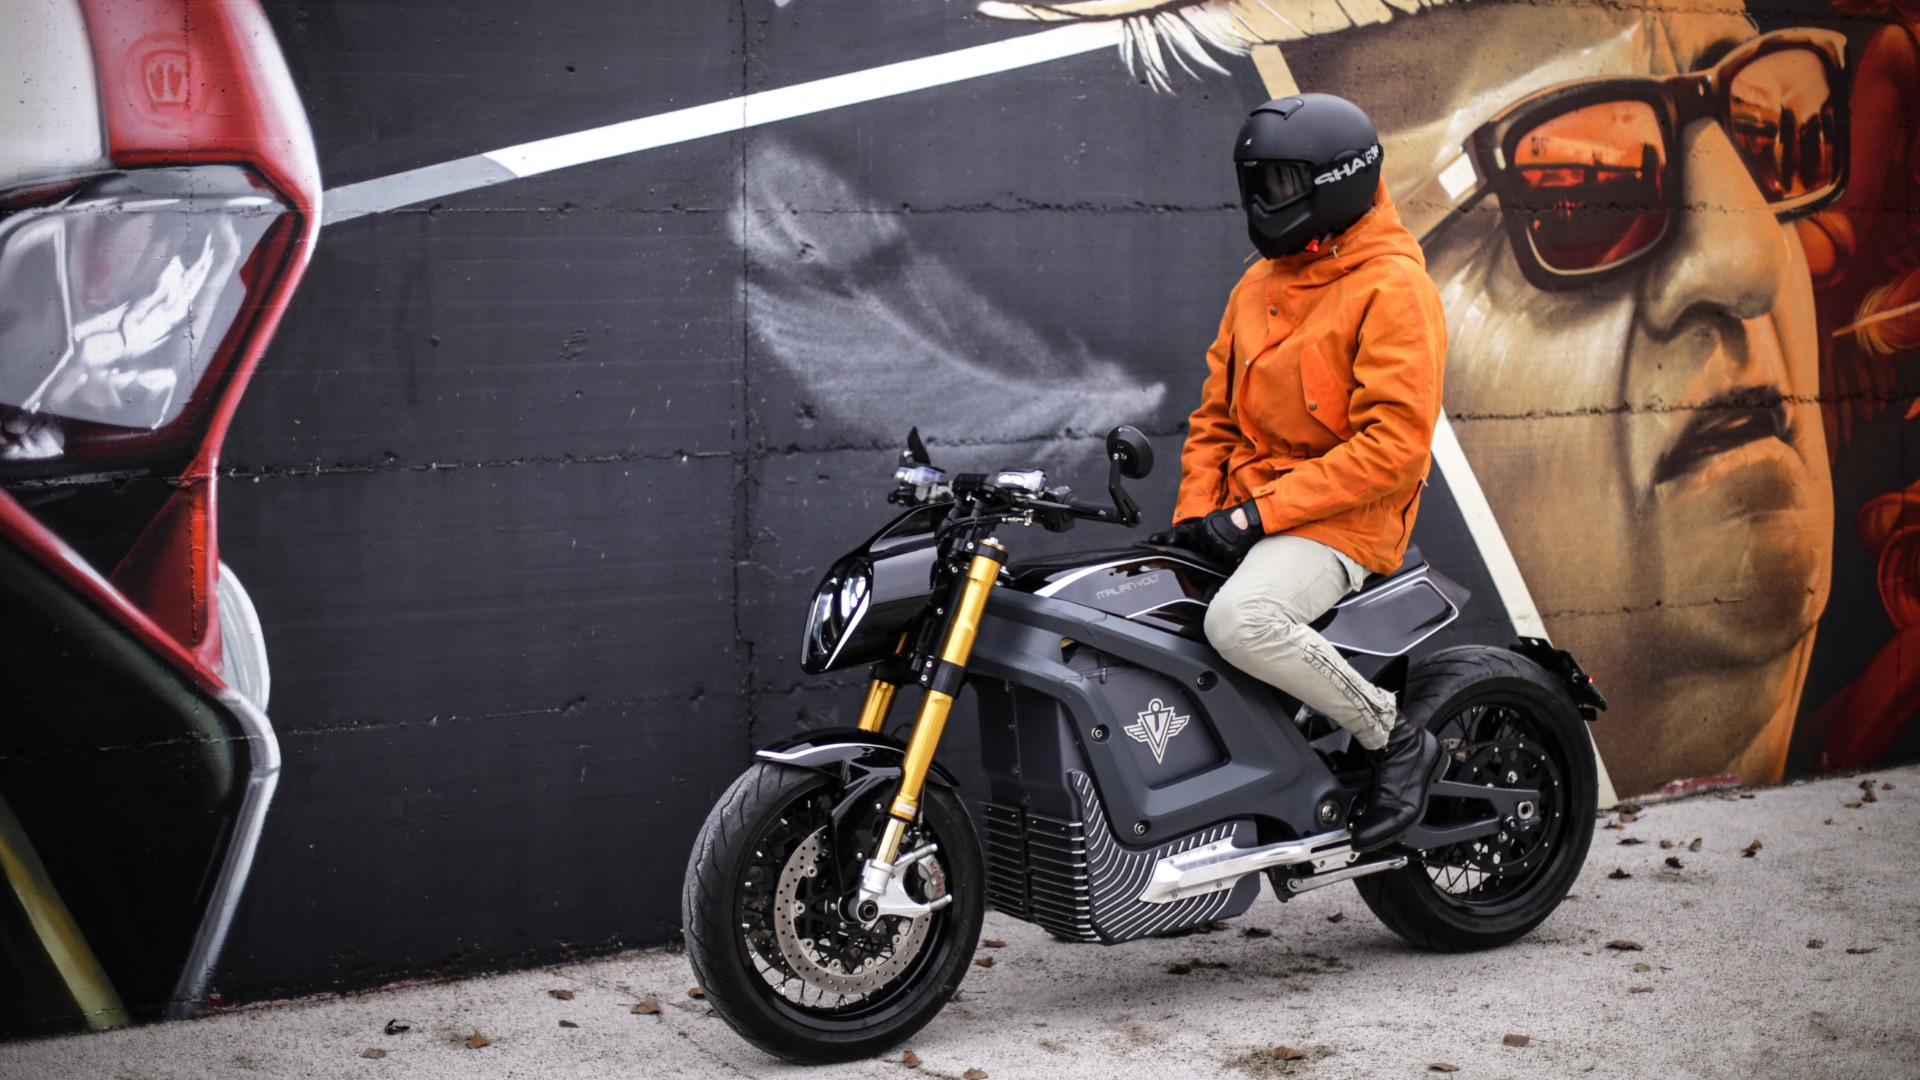 A new electric motorcycles Brand enters the Italian Motor Valley: Tazzari EV acquires Italian Volt.